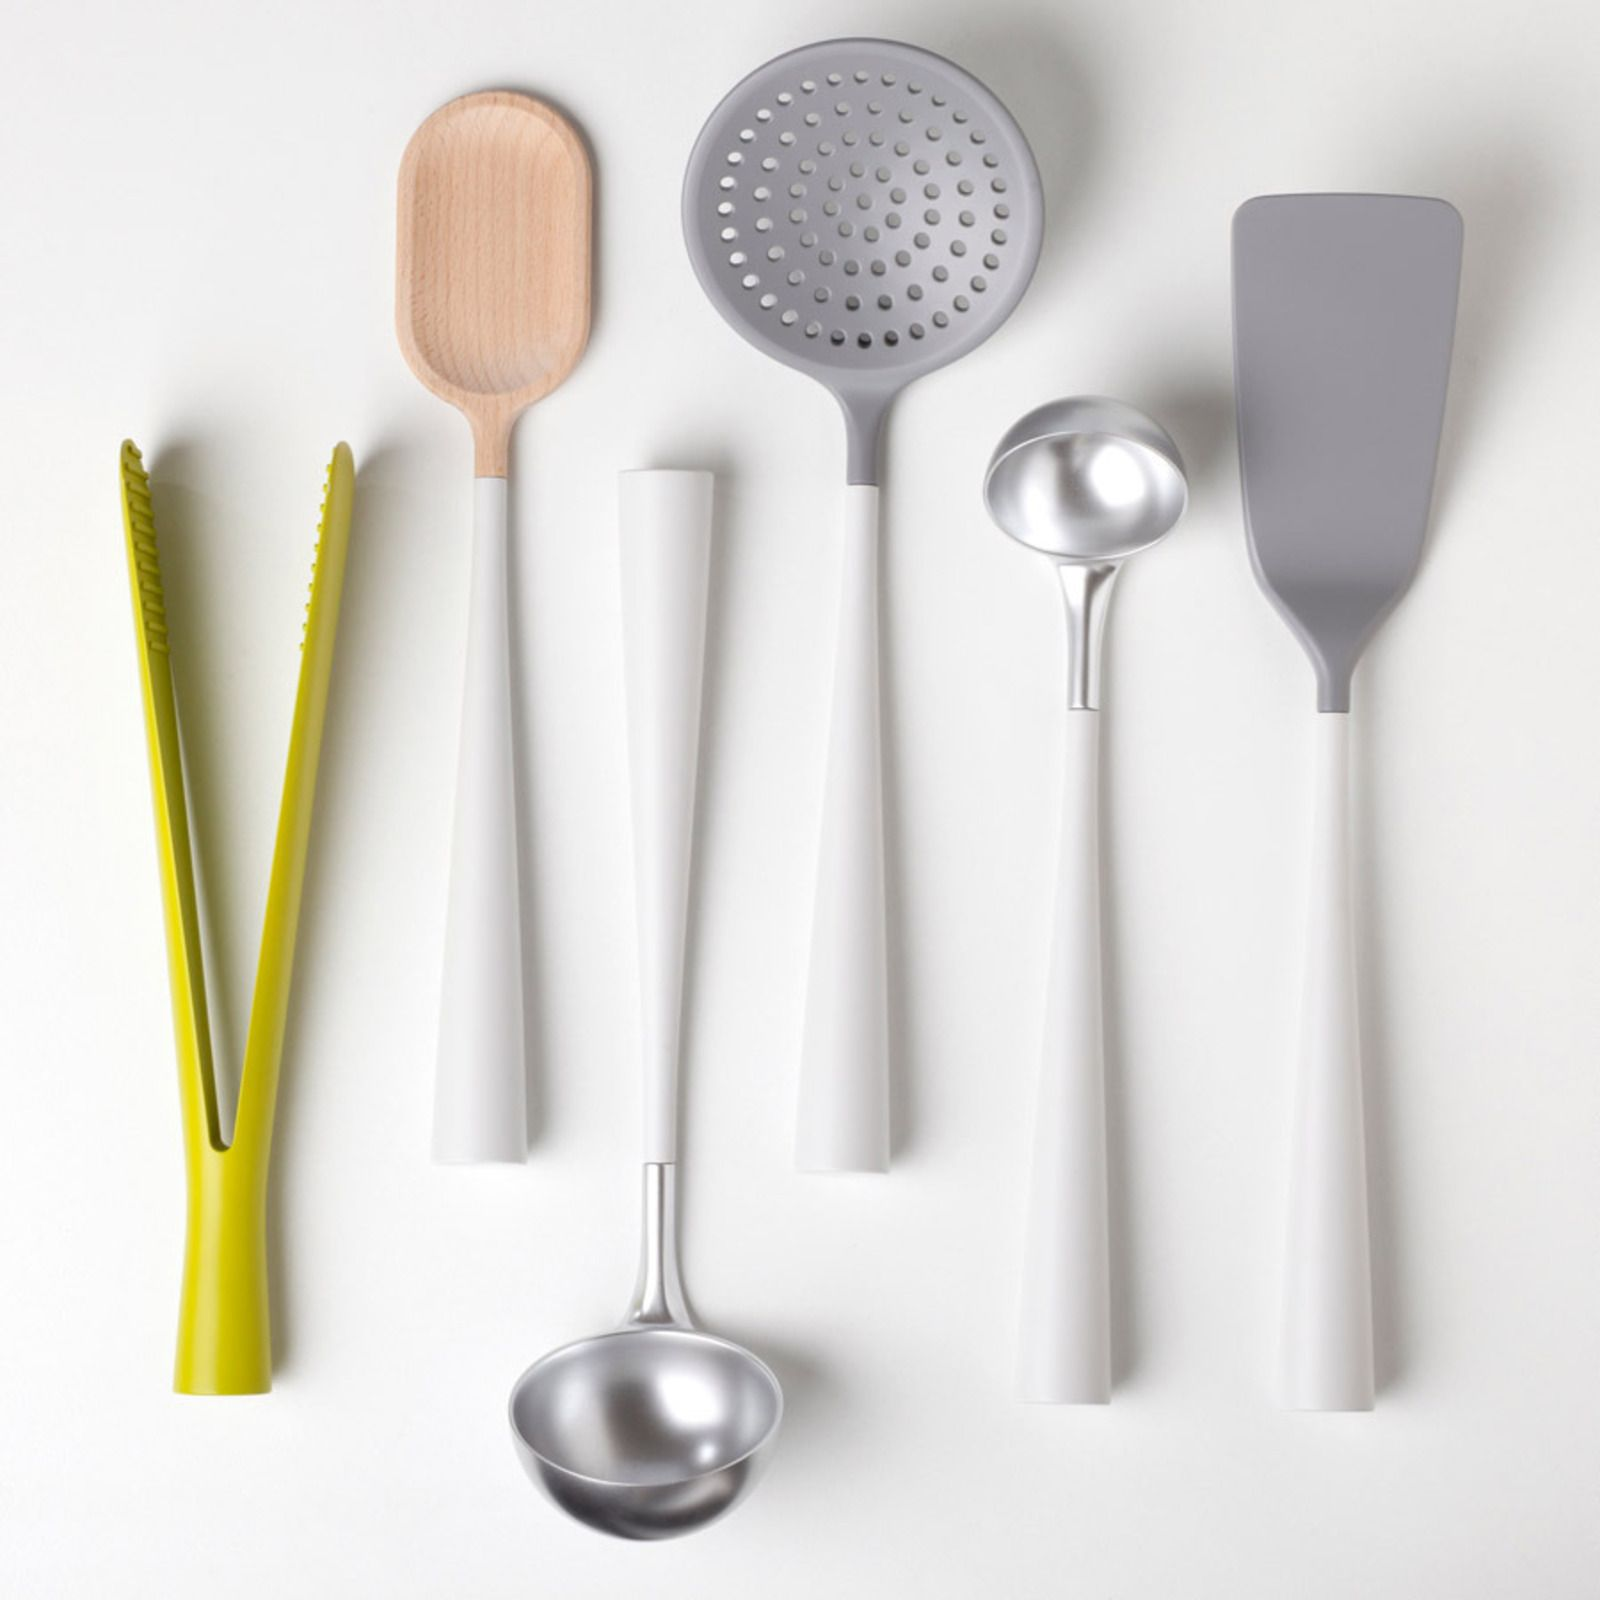 Smool Kitchen Tools | Kitchens, Kitchenware and Product design